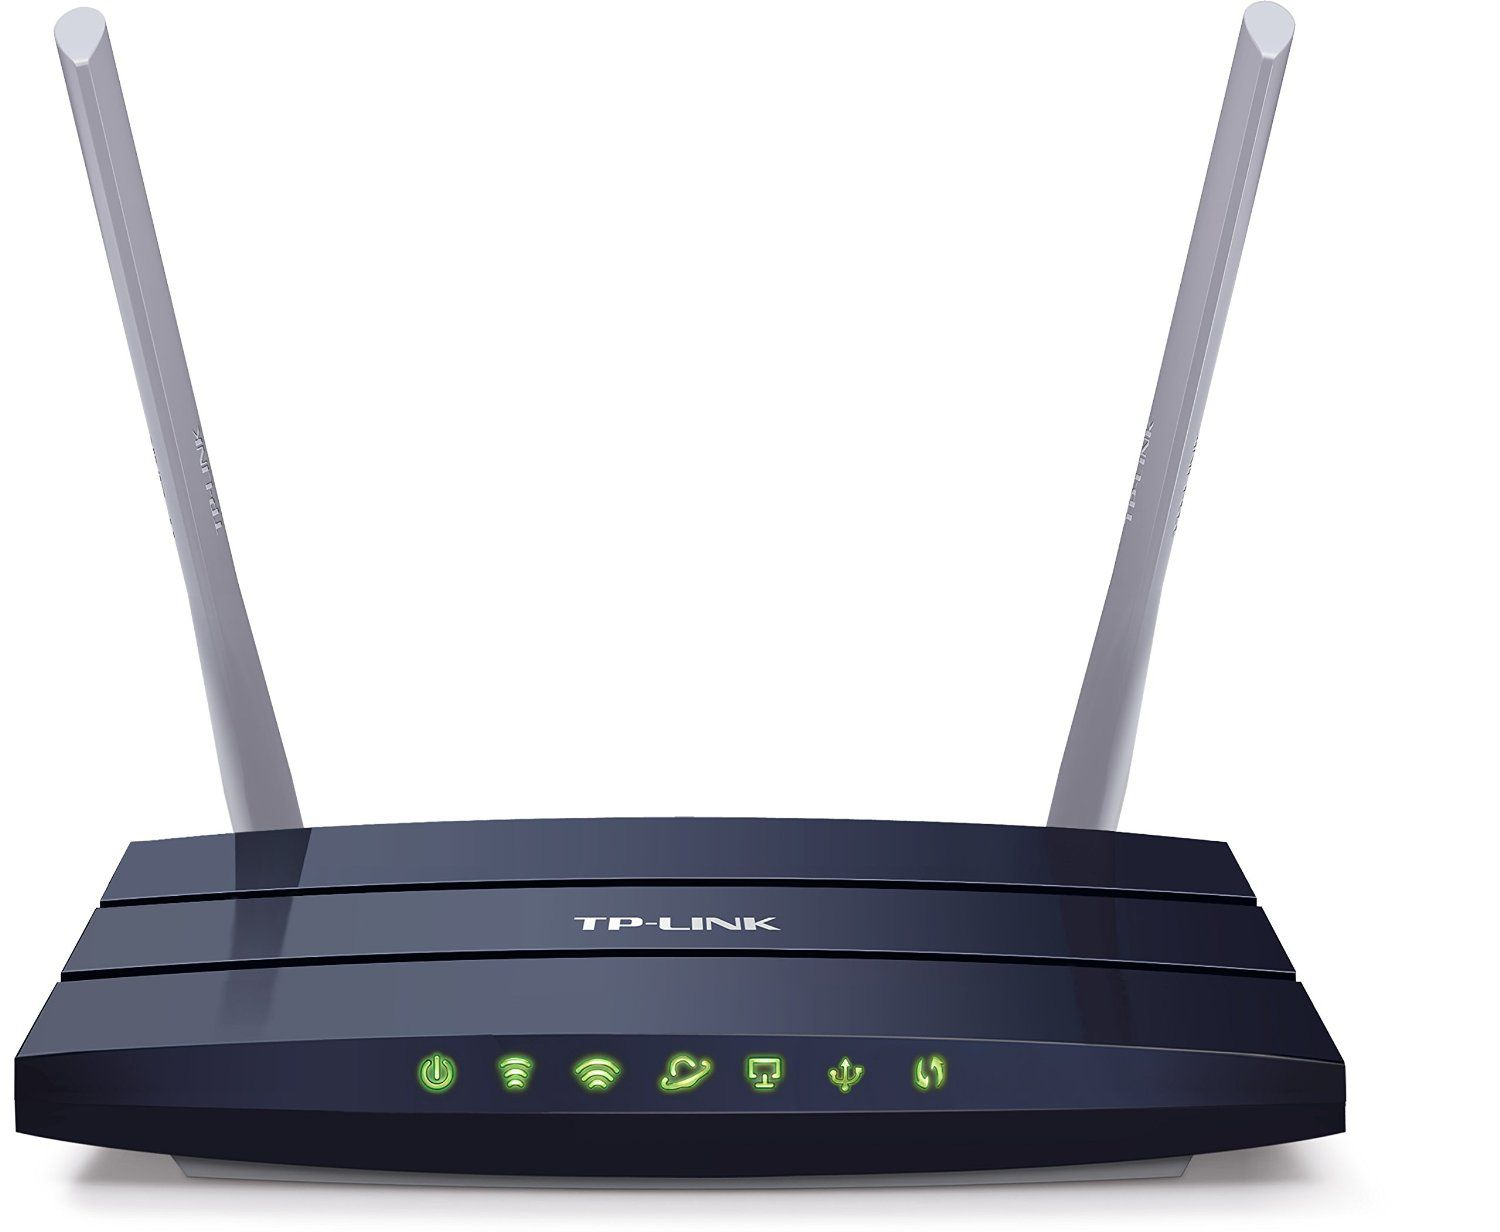 What Is The Best Router To Buy For Home